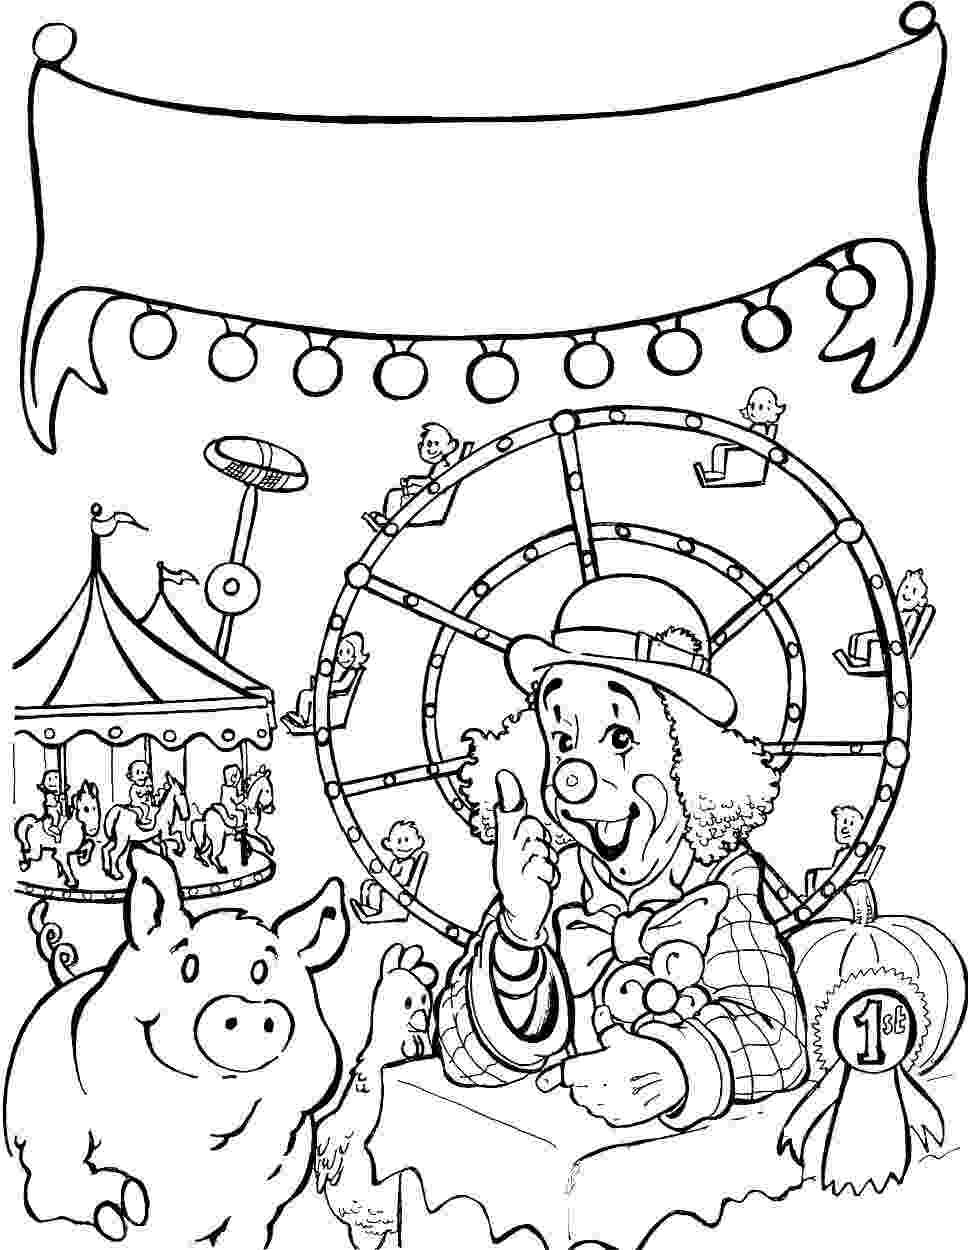 fair coloring pages coloring page carnival county fair county fair crafts fair pages coloring